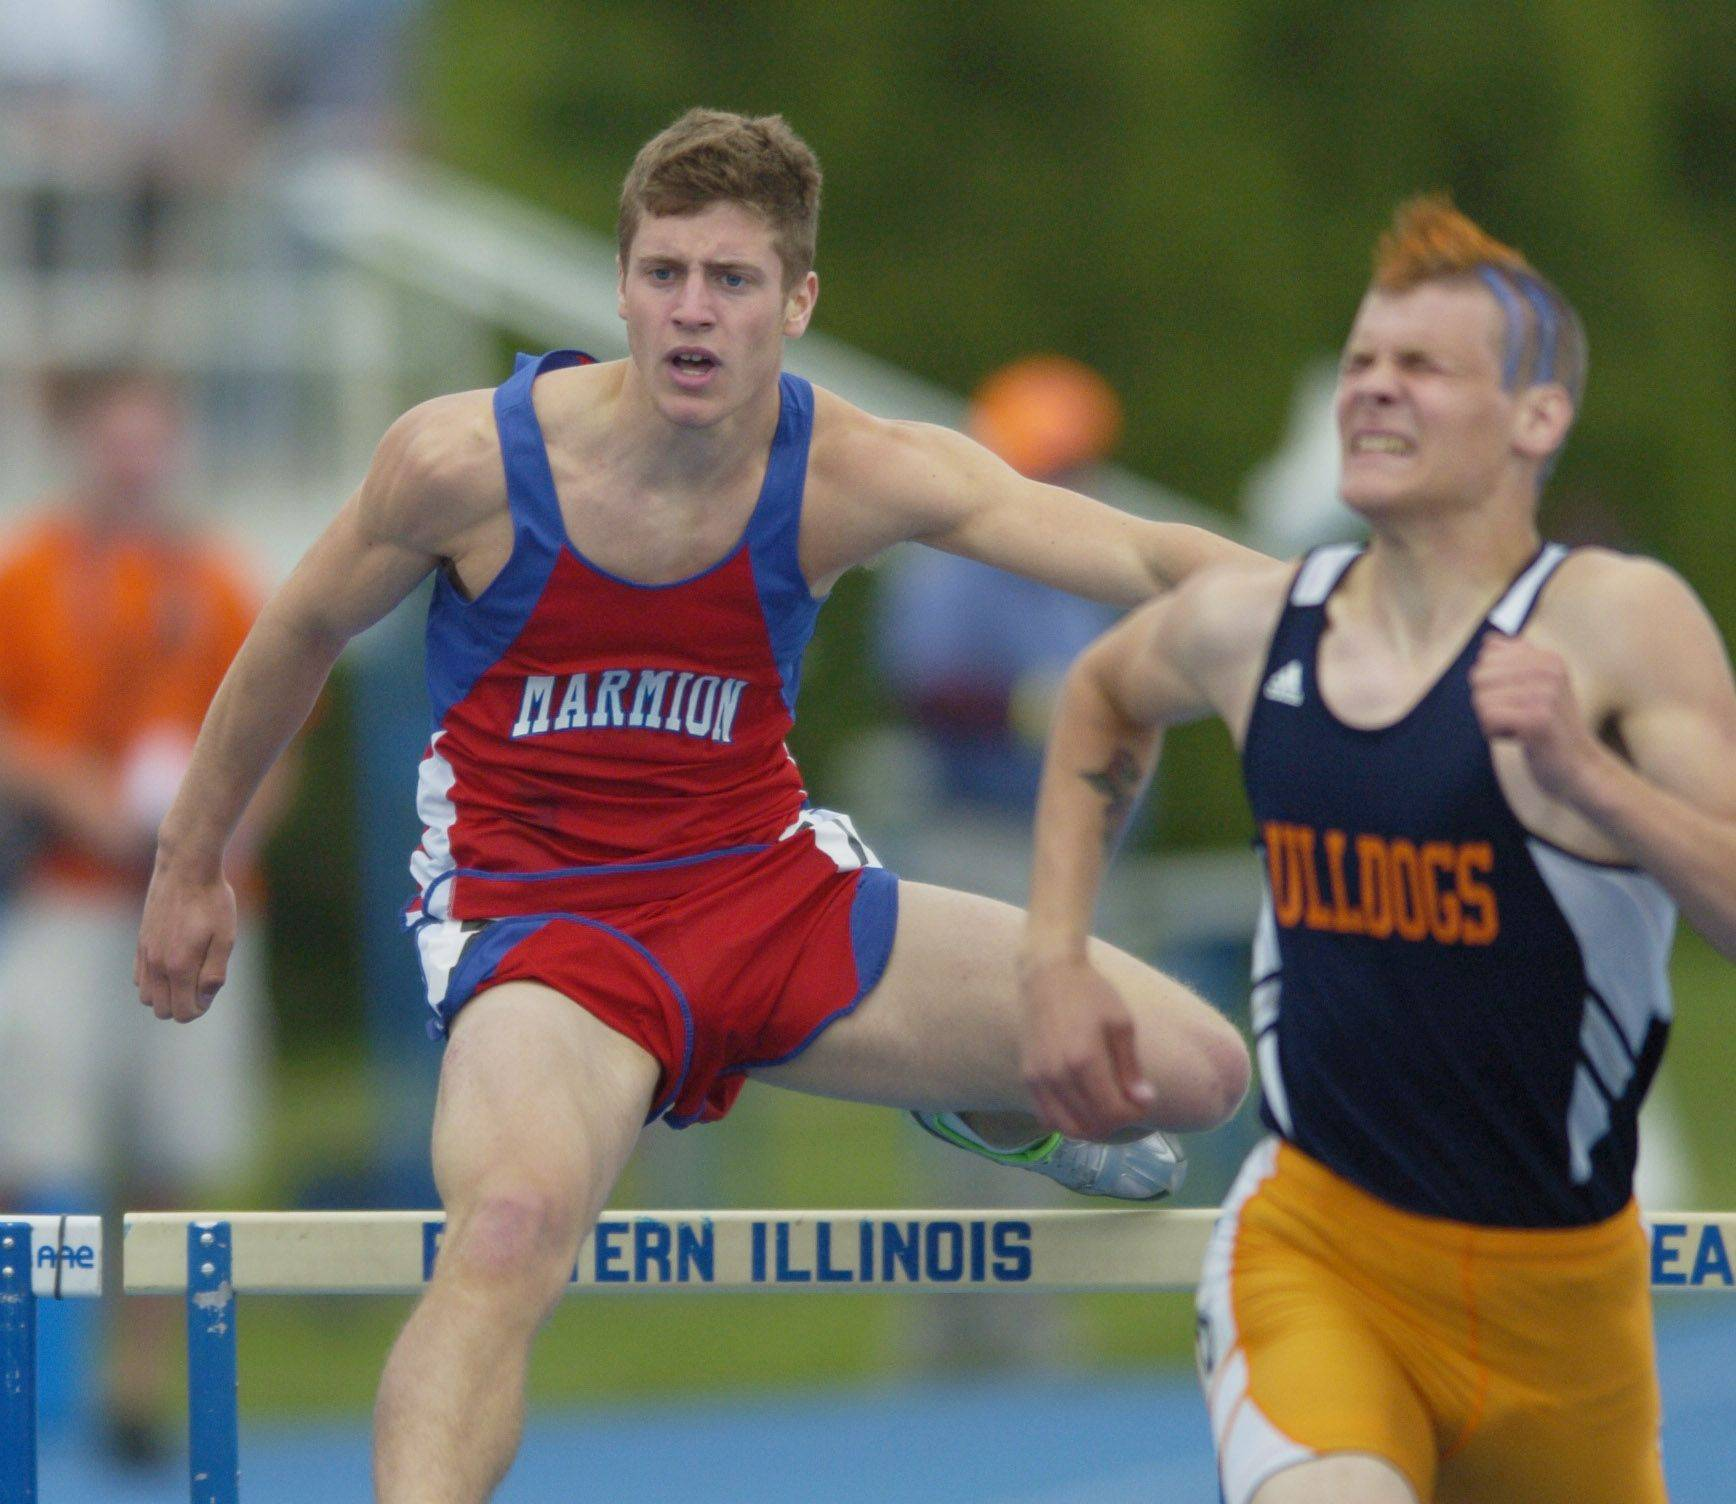 Eddy Grahovec of Marmion Academy competes in the class 2A 300-meter intermediate hurdles during the boys state track finals in Charleston Saturday.